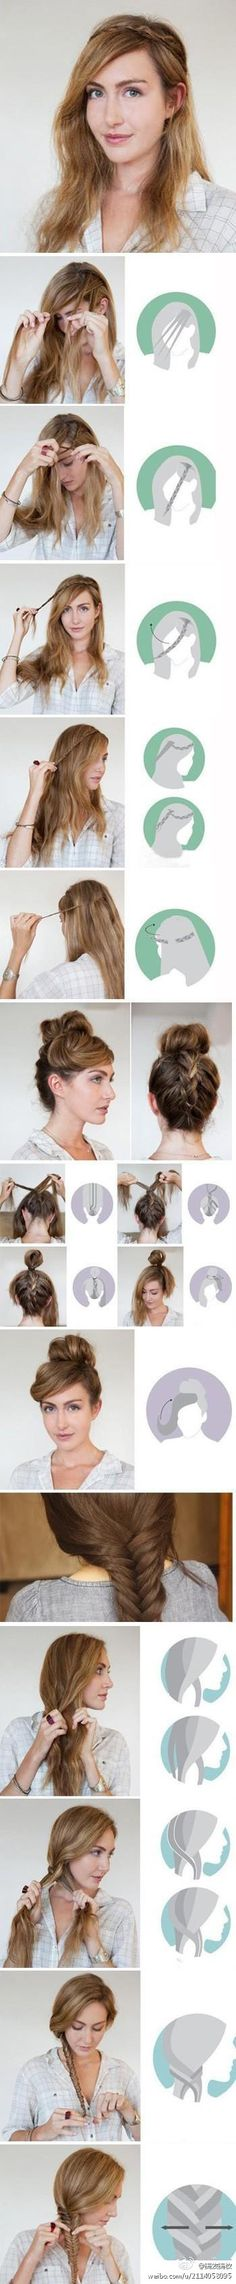 Several ways to wear long hair~step by step photos for fun braids, or an upsweep.